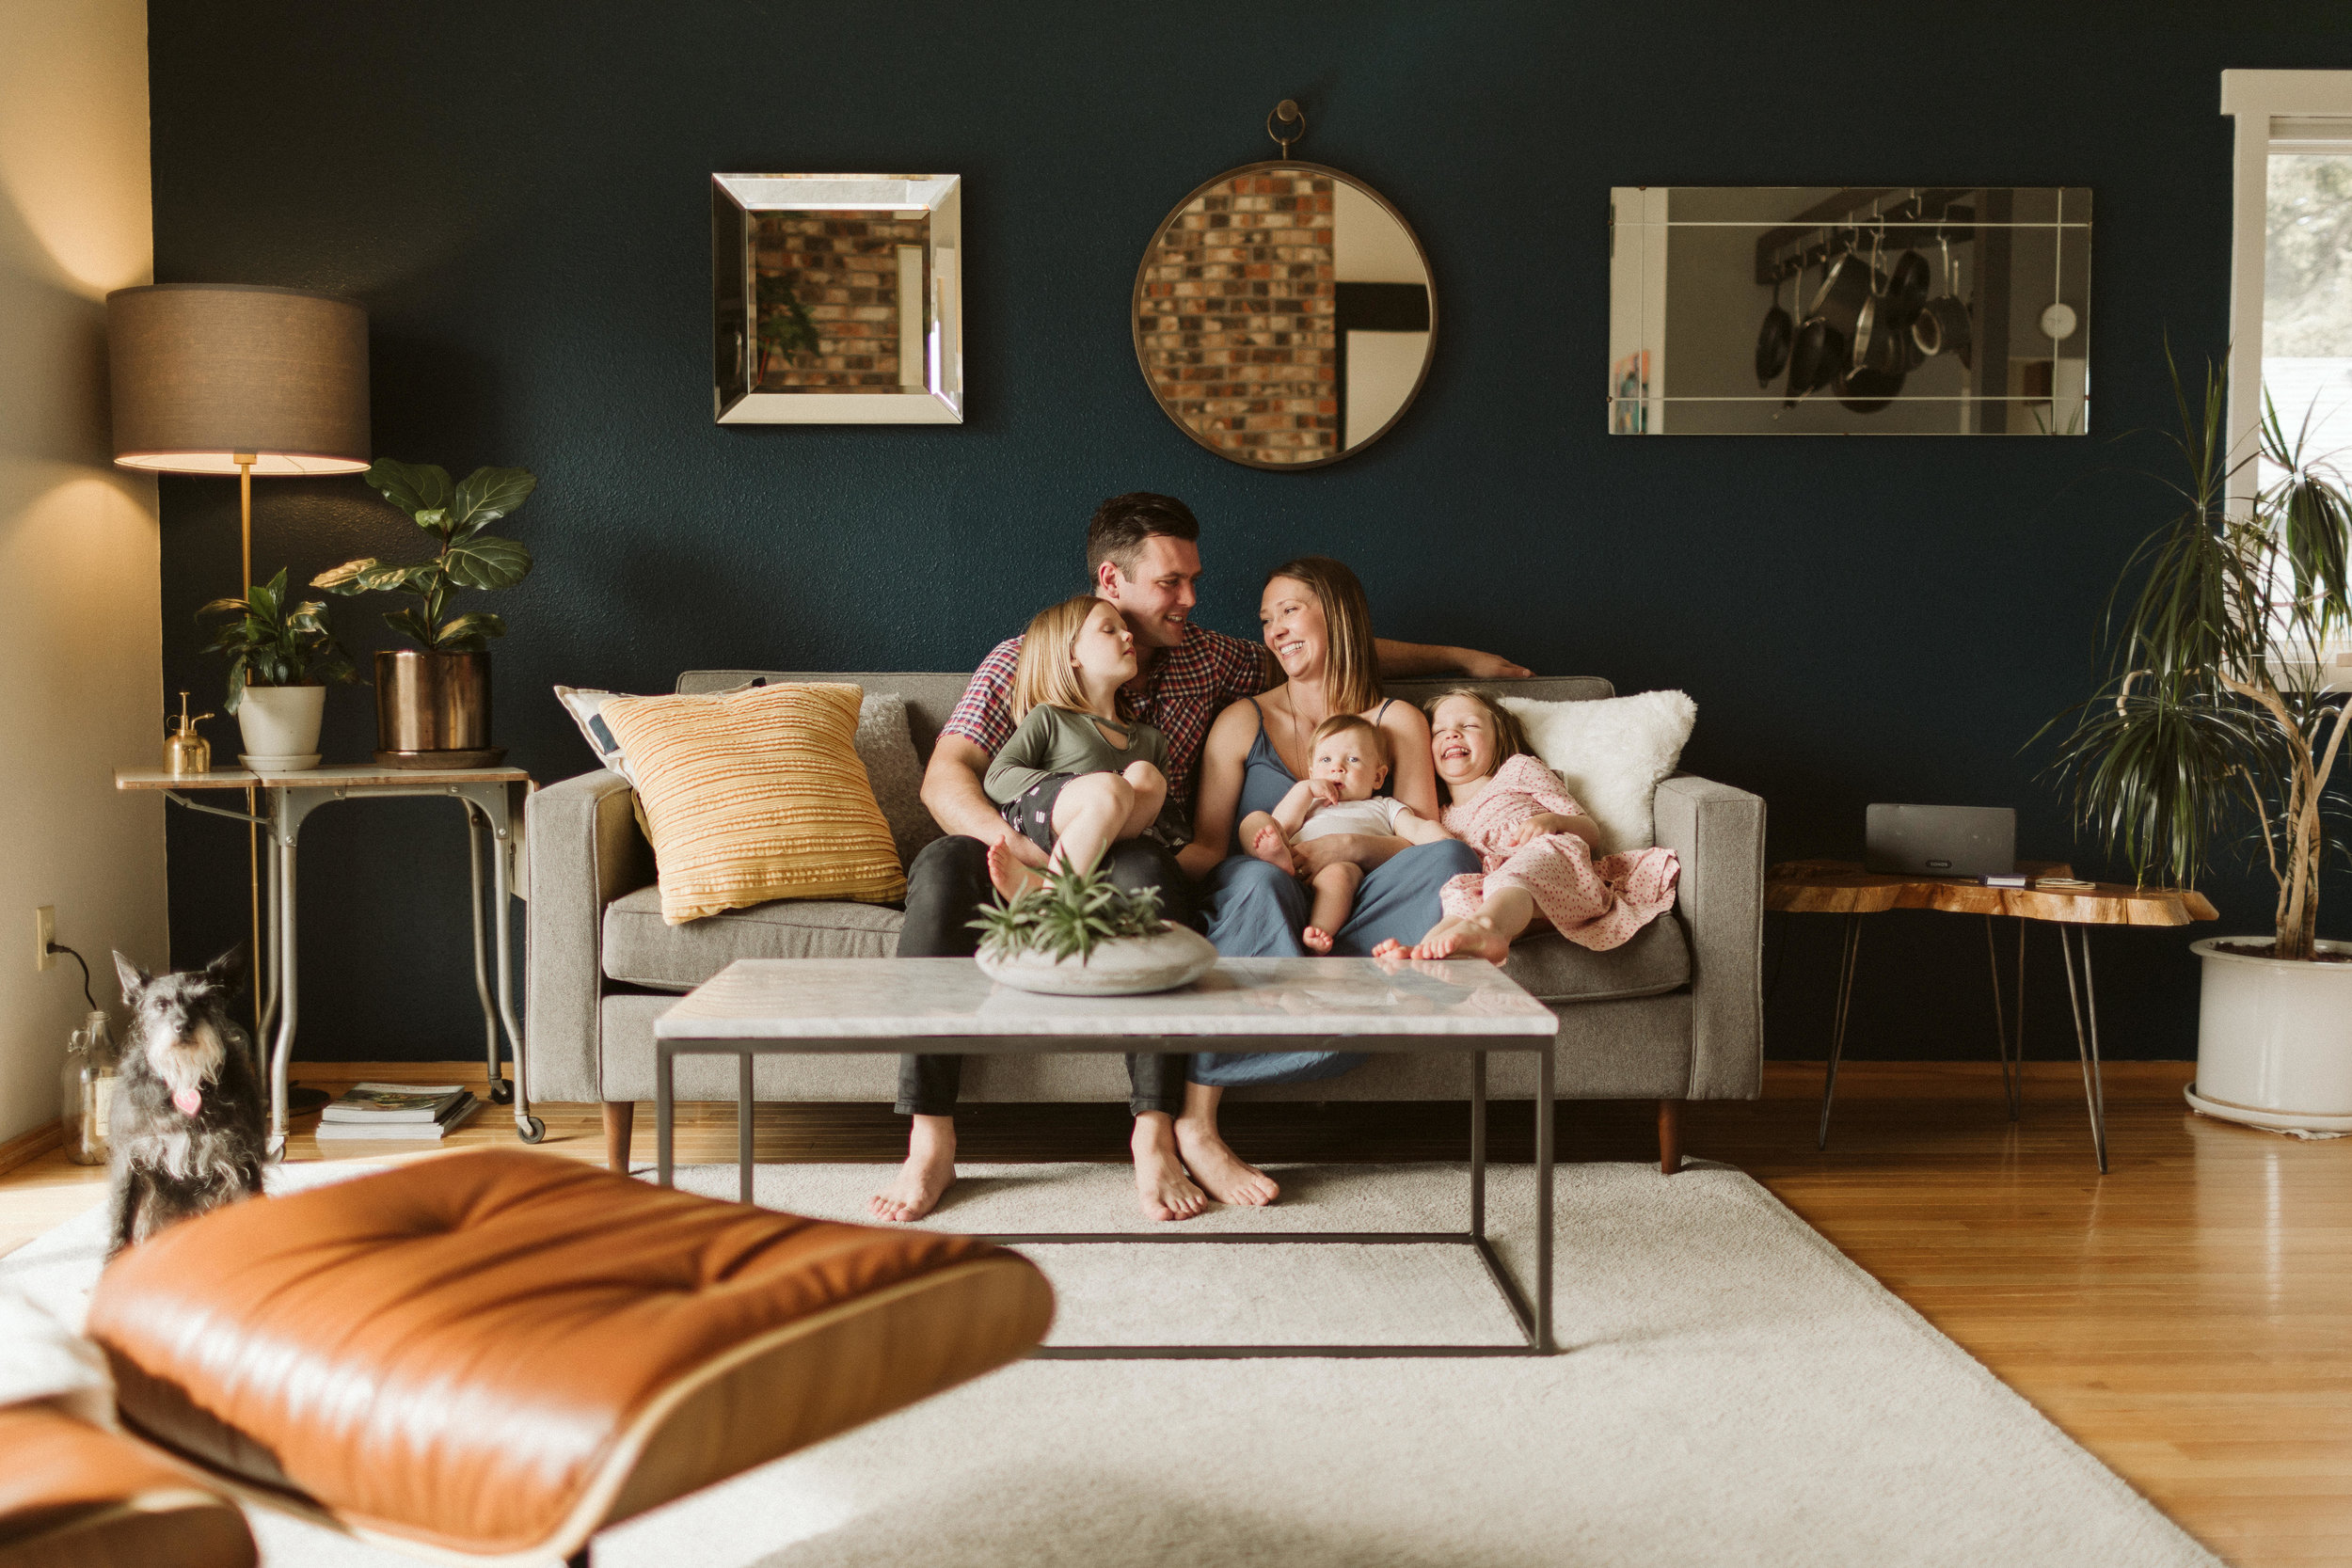 Seattle Family In Home Photography51.jpg